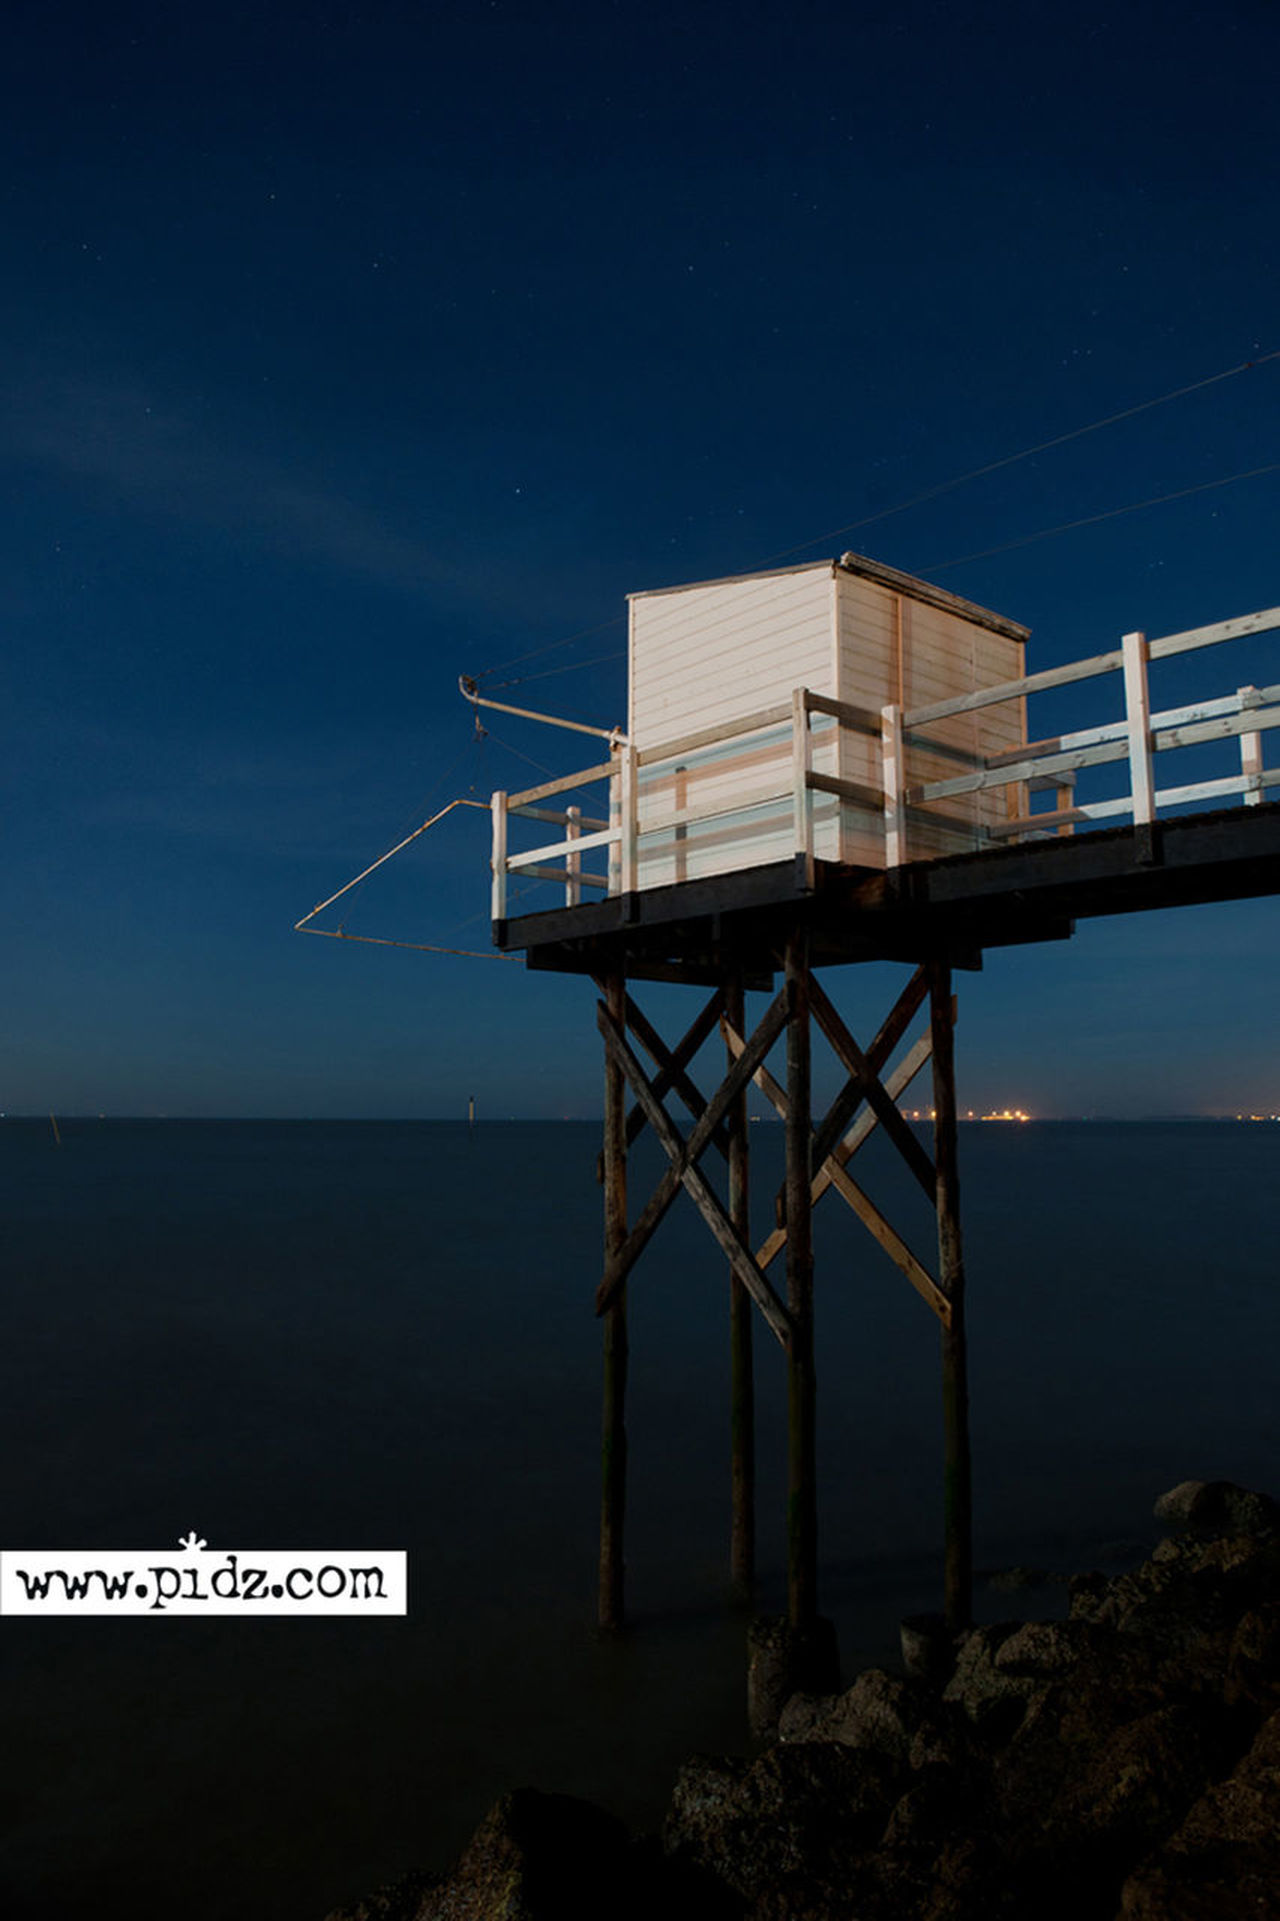 Nightphotography Seascape Carrelet Nightshot Blue Nikon